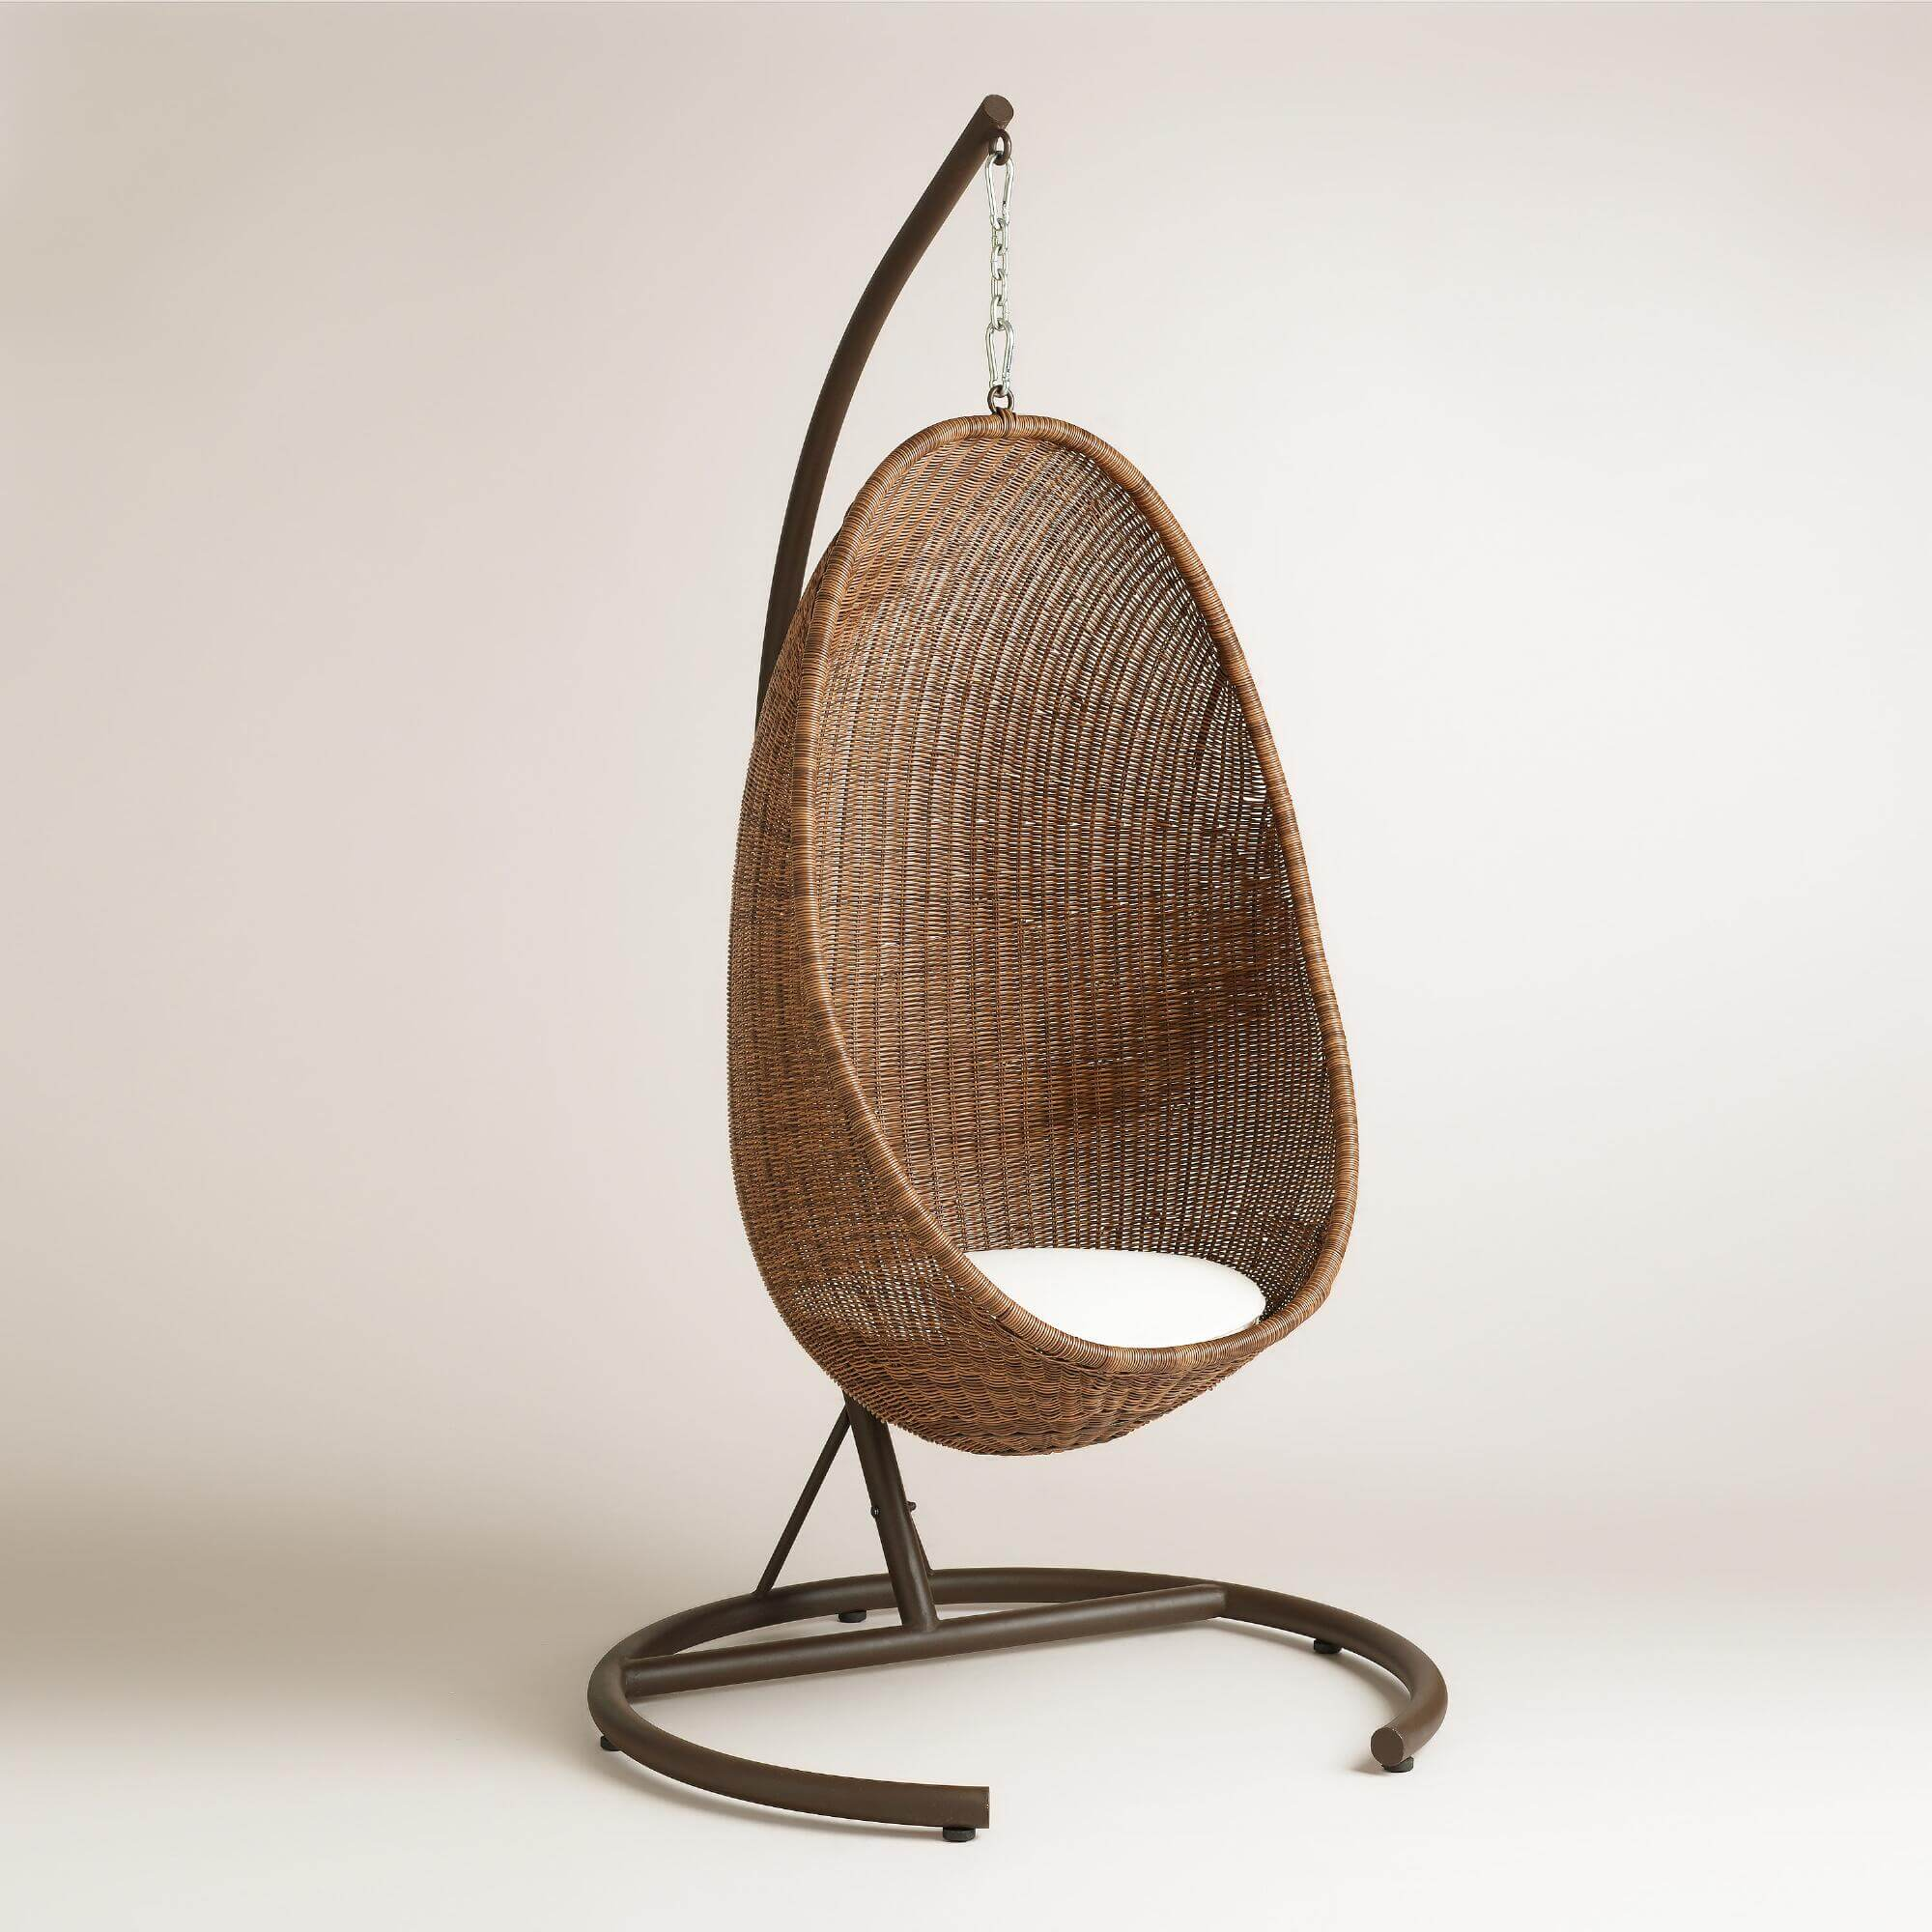 Egg Shaped Wicker Chair Best Hanging Chair Reviews And Guide The Hammock Expert